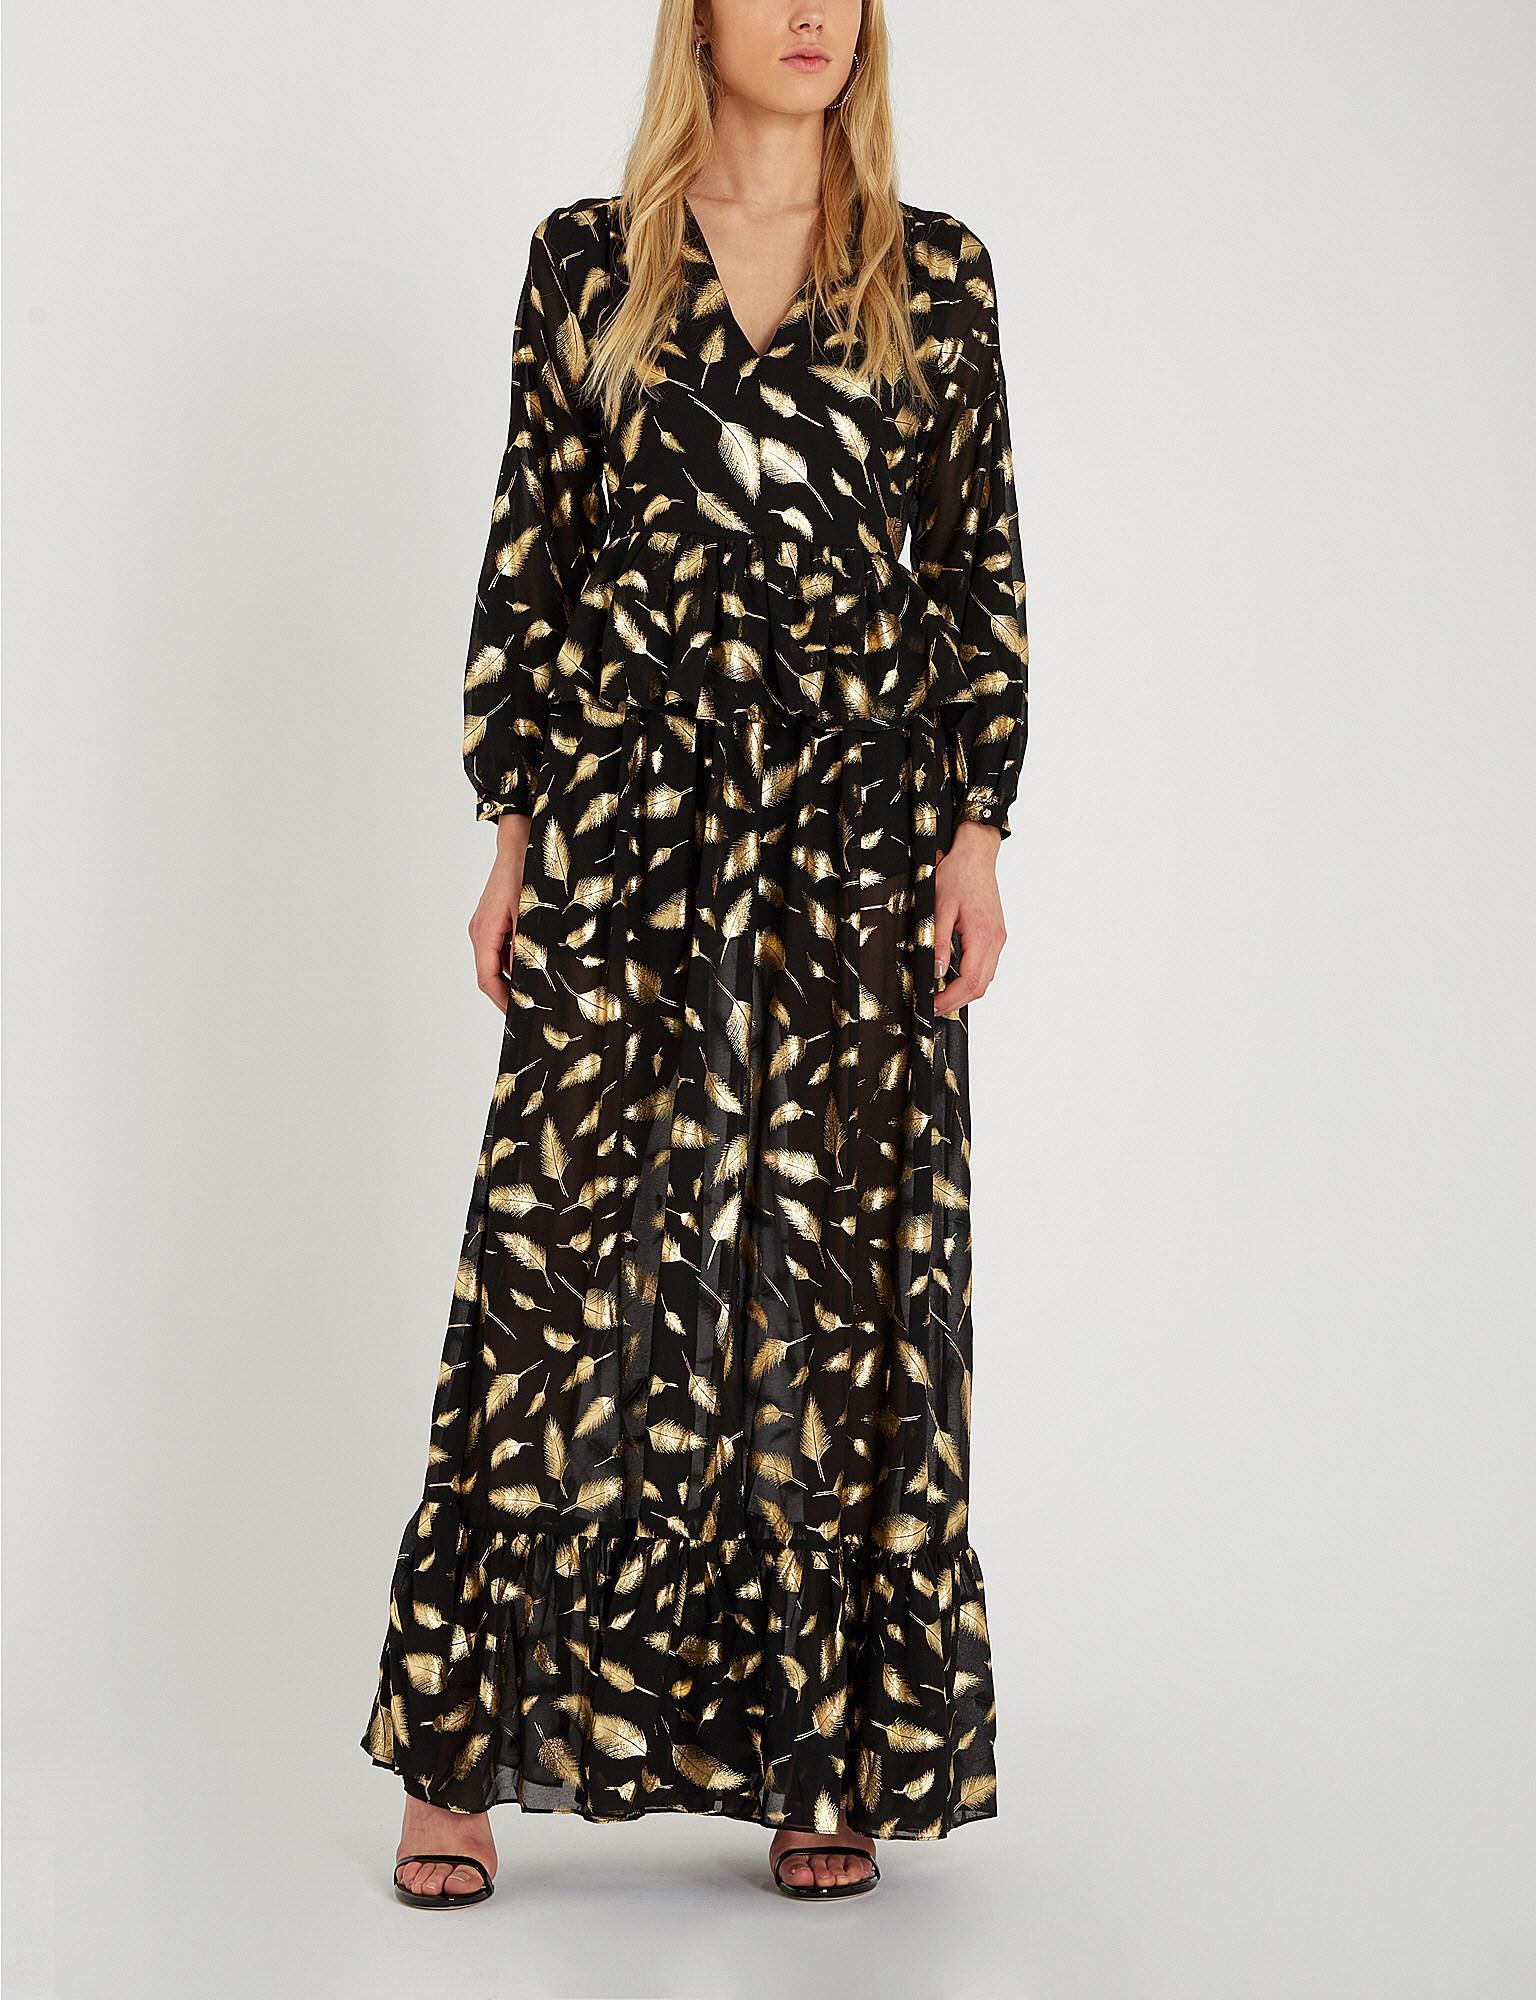 6066e2e8542db1 Forever Unique Metallic Gold Leaf Print Maxi Dress in Black - Lyst